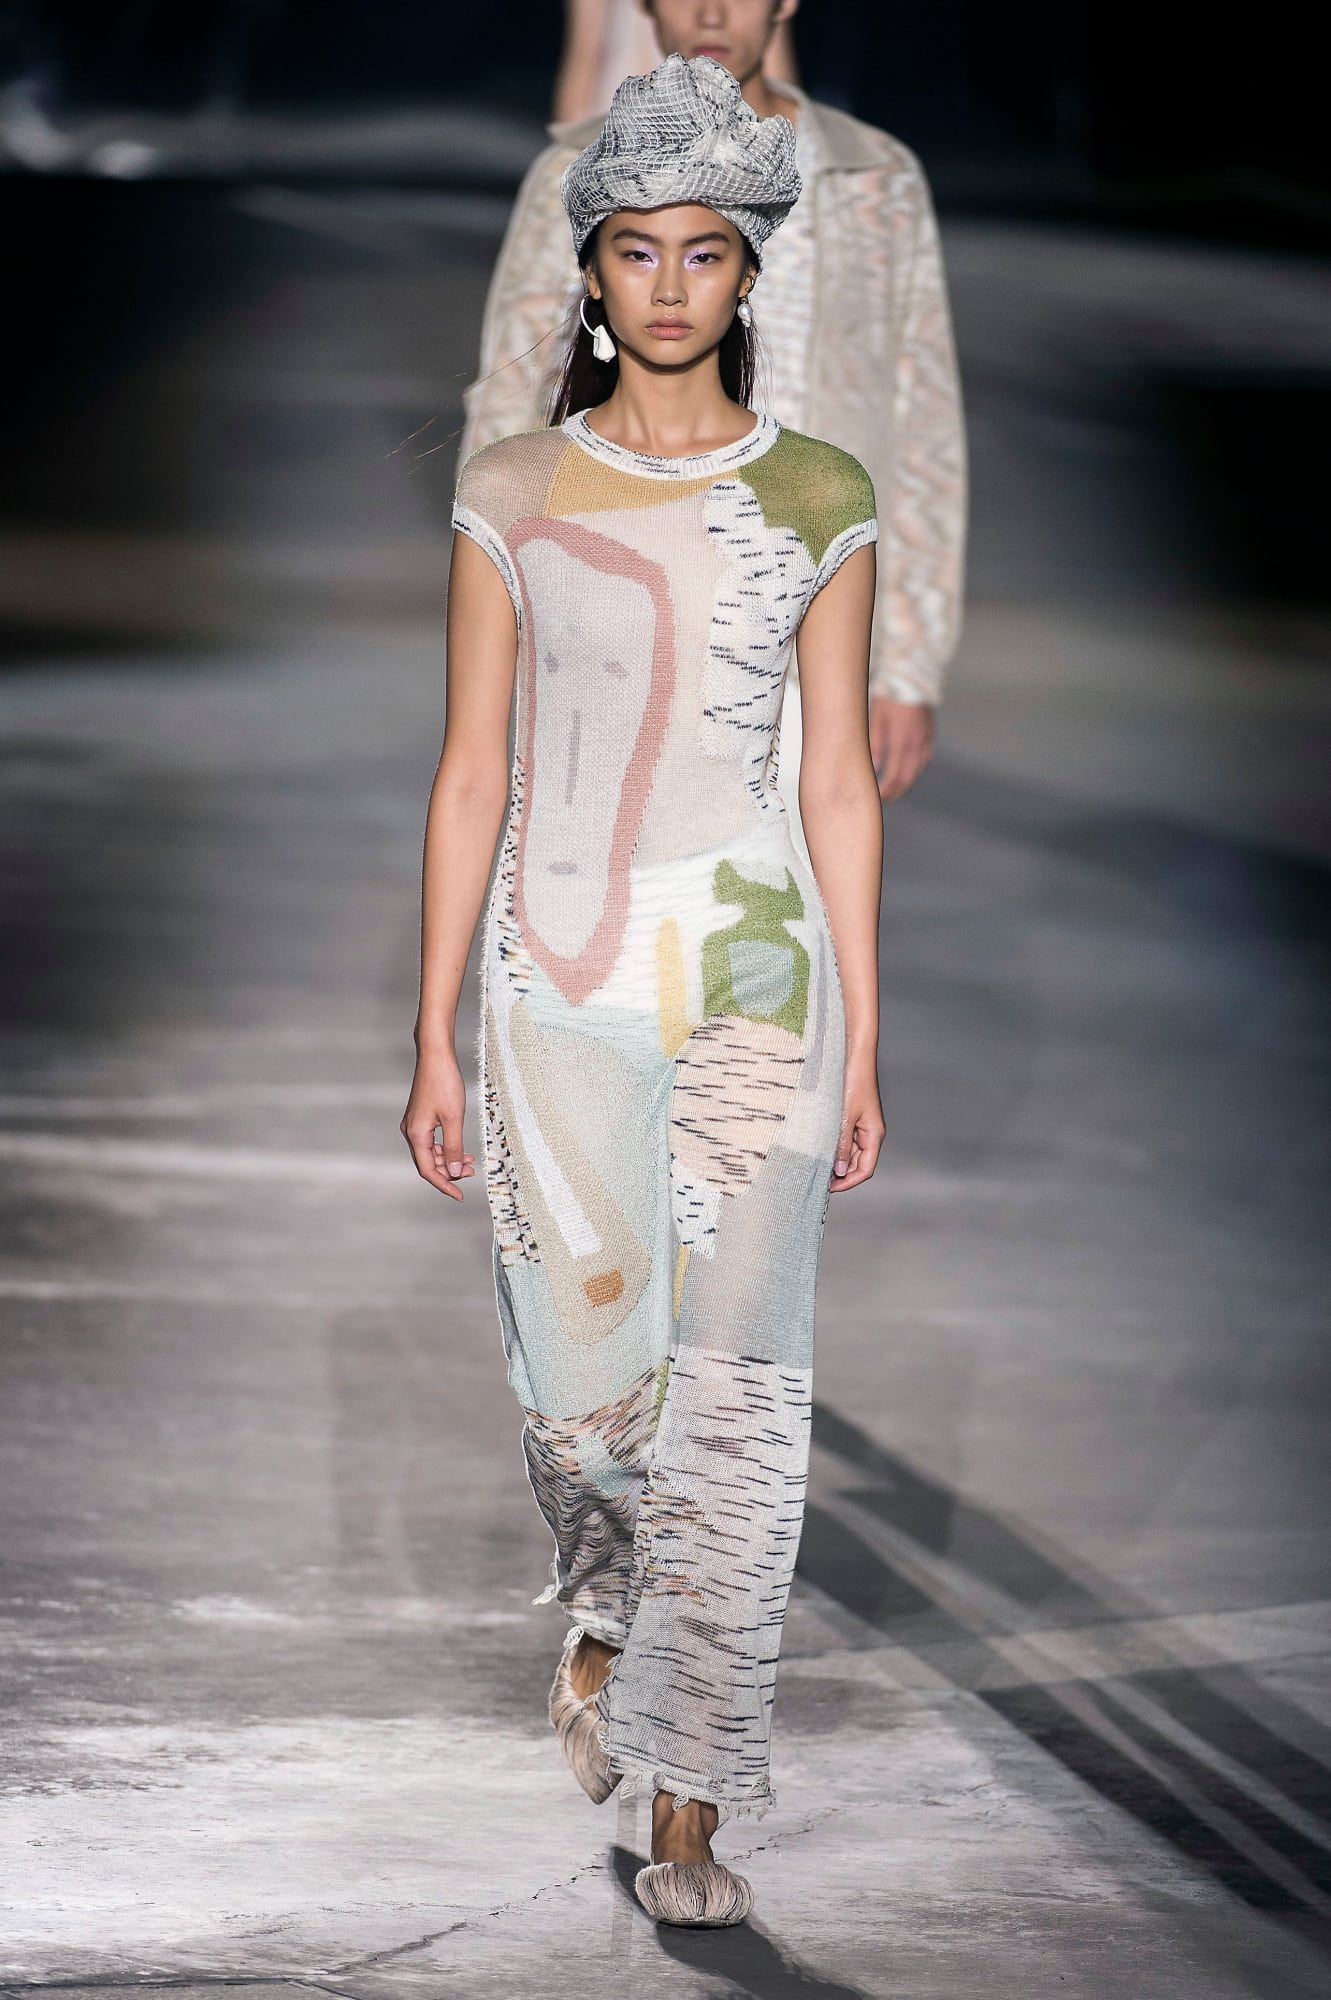 af1073b9f4137 The Top 7 Trends From Milan Fashion Week Spring 2019   2019 SS ...